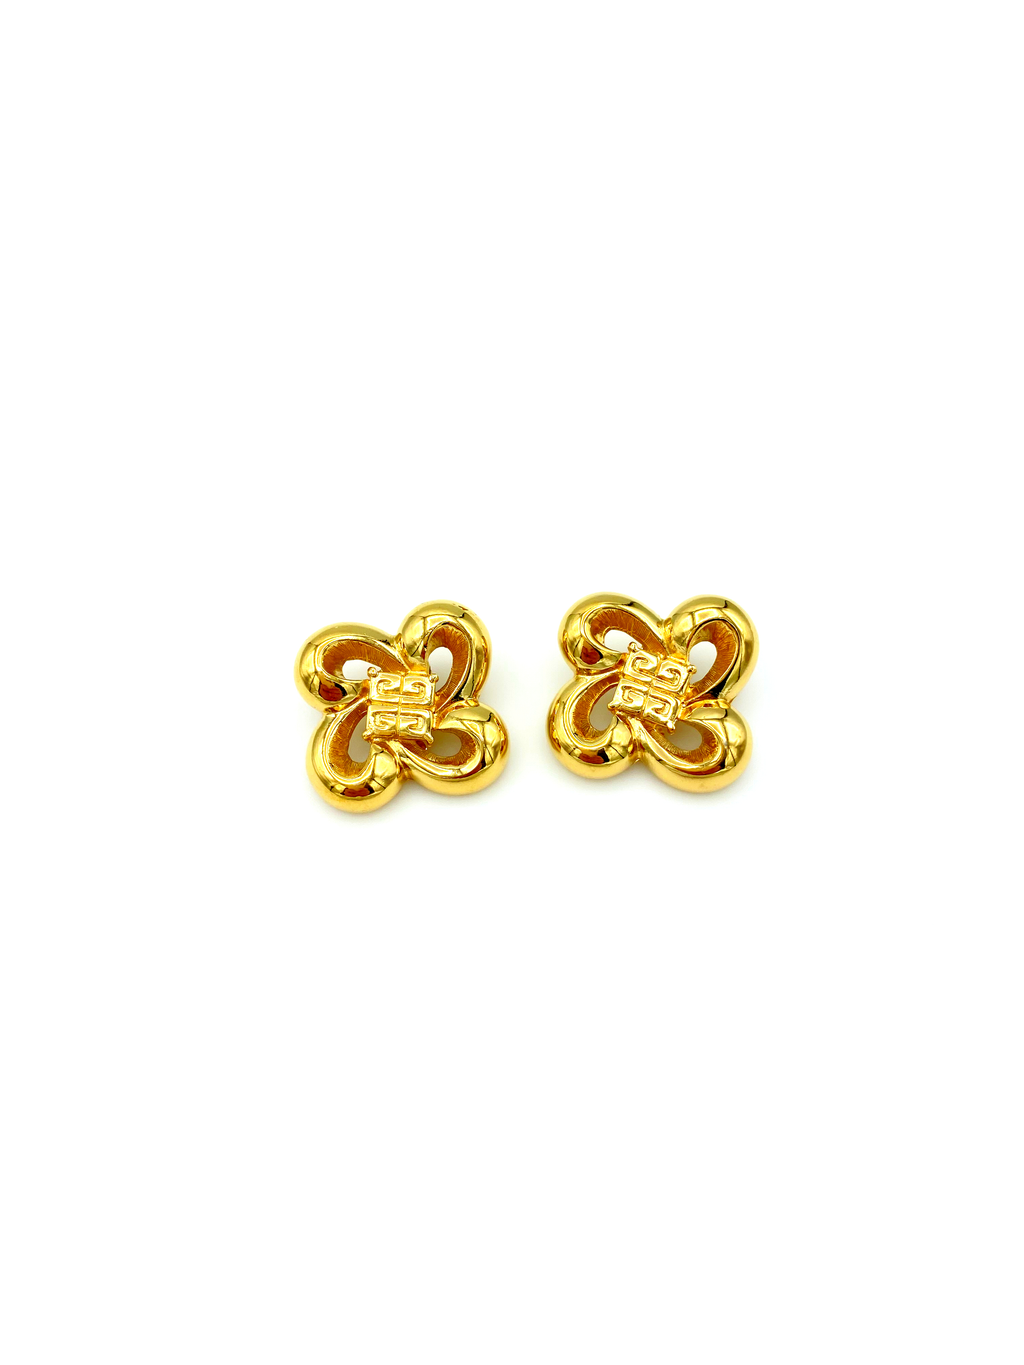 Classic Givenchy Gold Bow Logo Vintage Earrings-Sustainable Fashion with Vintage Style-Trending Designer Fashion-24 Wishes